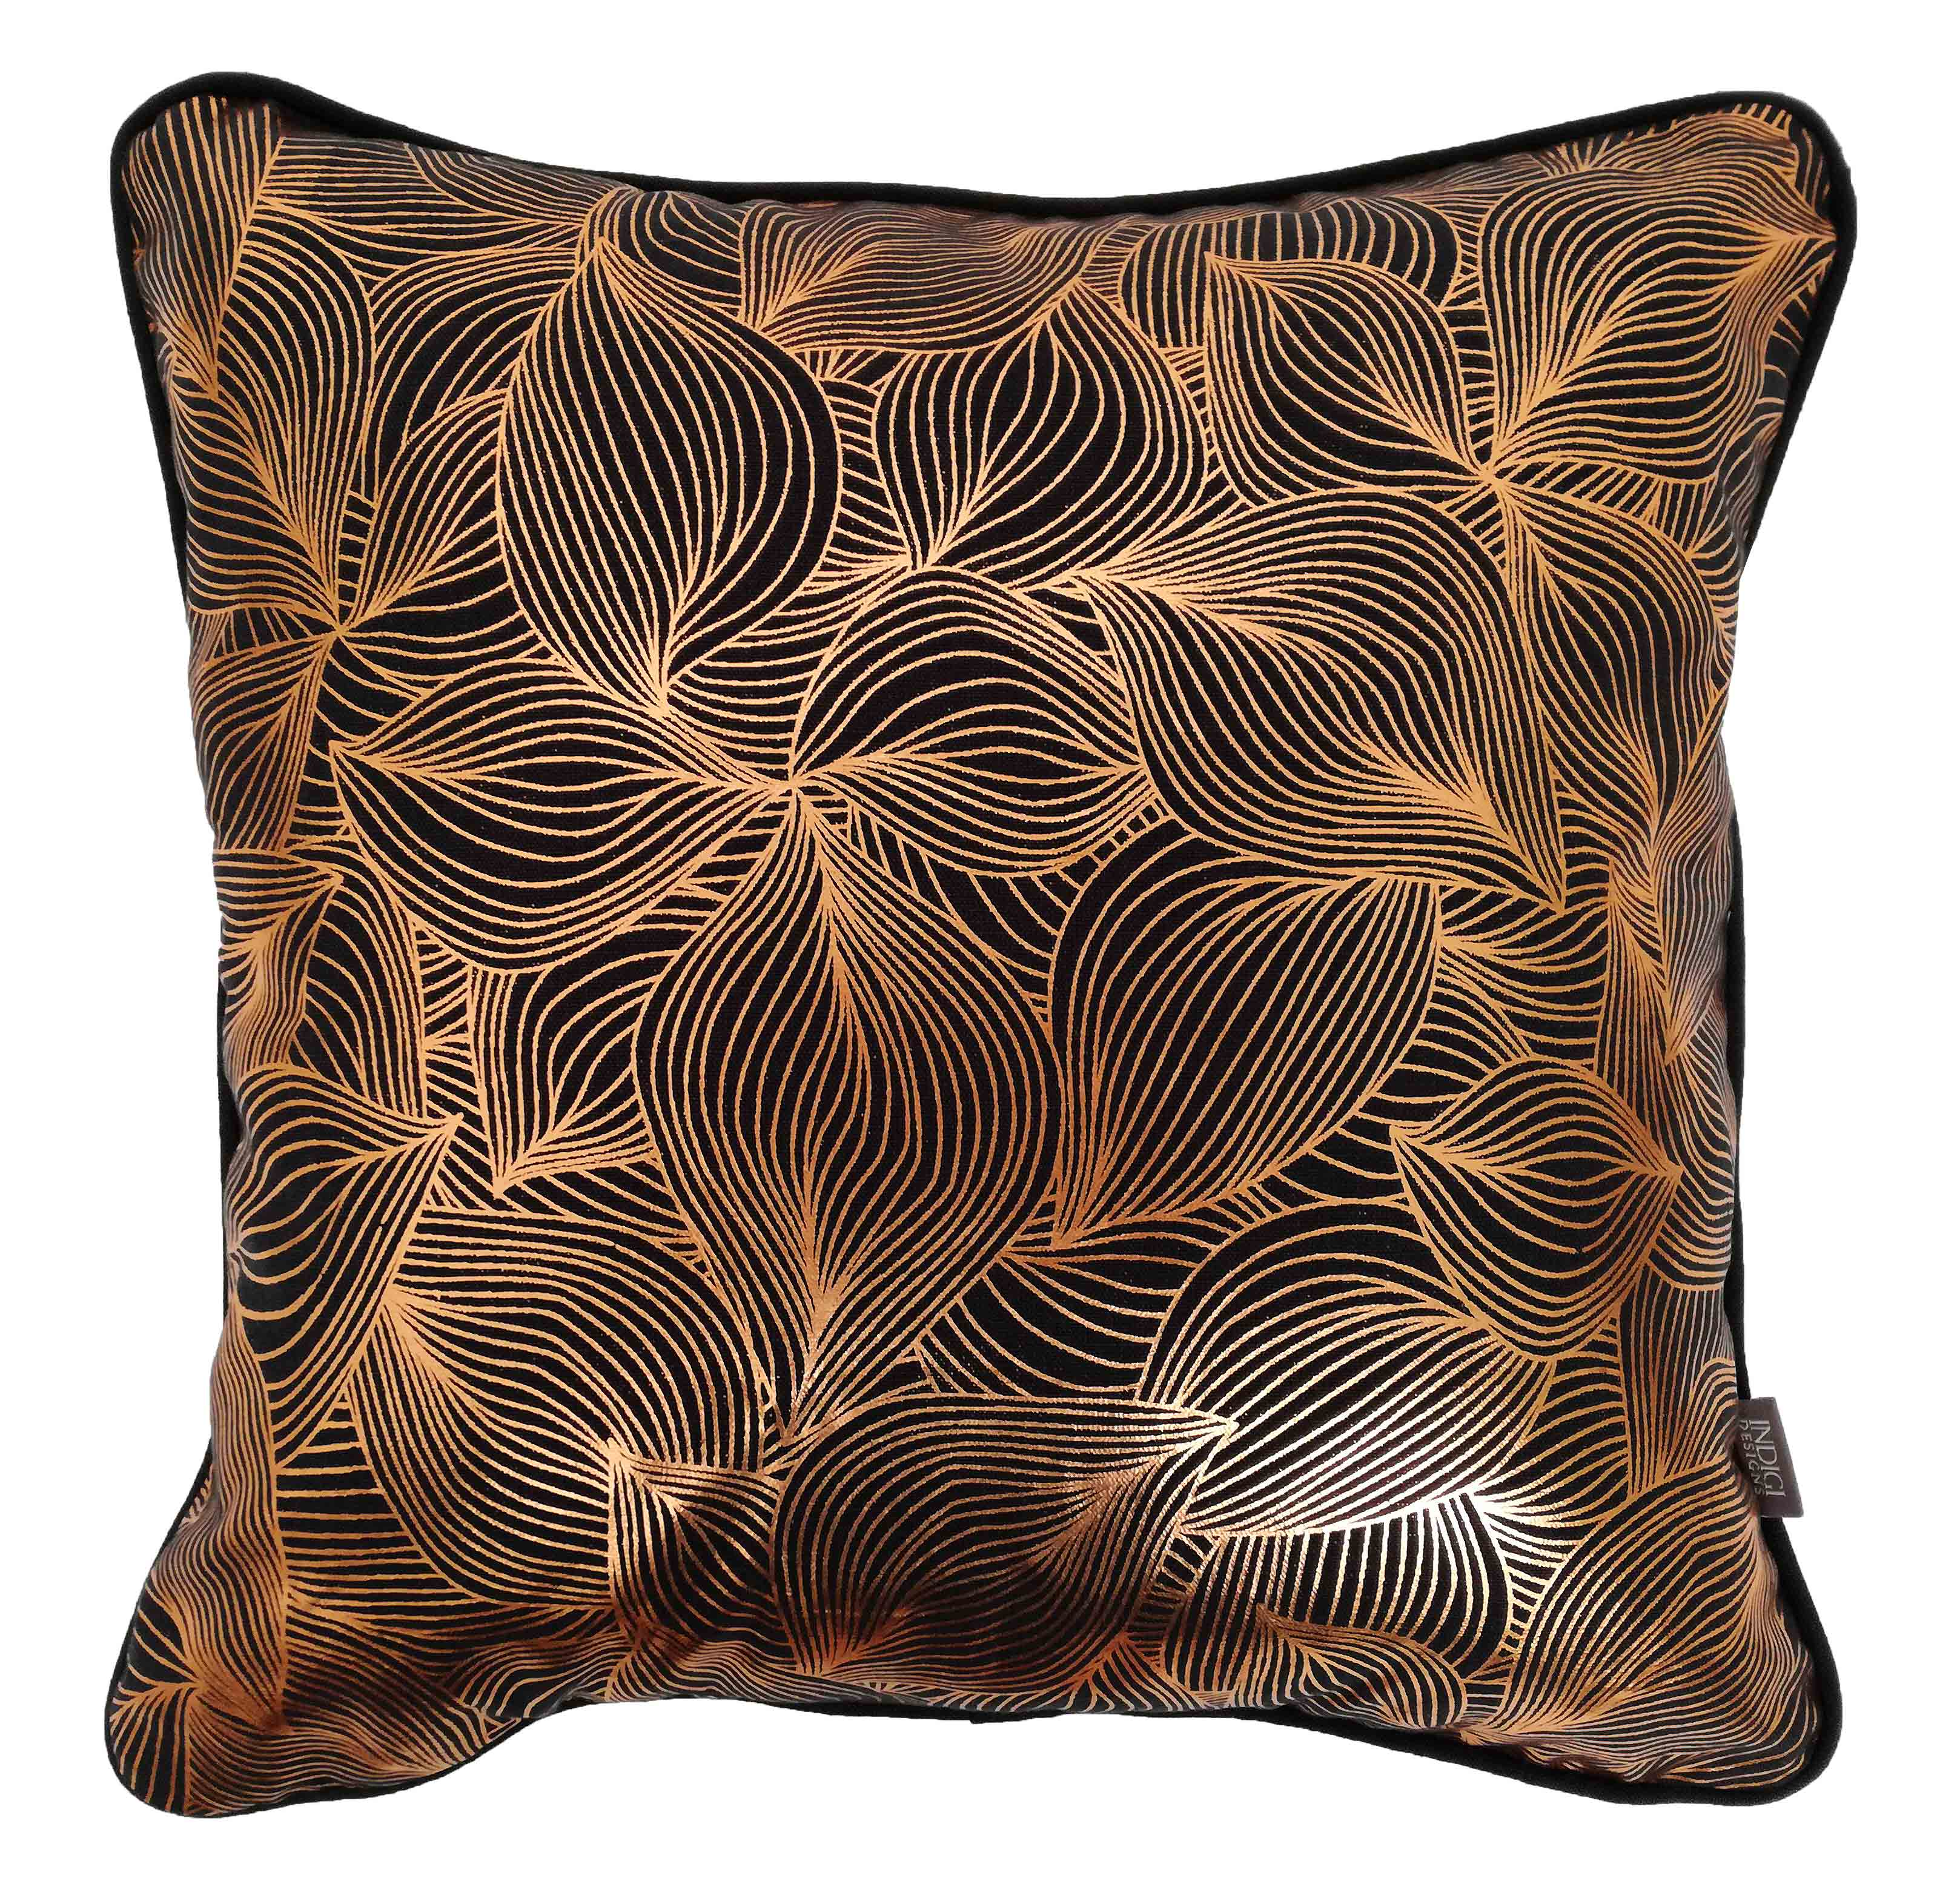 Copper, Gold & Silver Foiling Cushion Covers (View All)